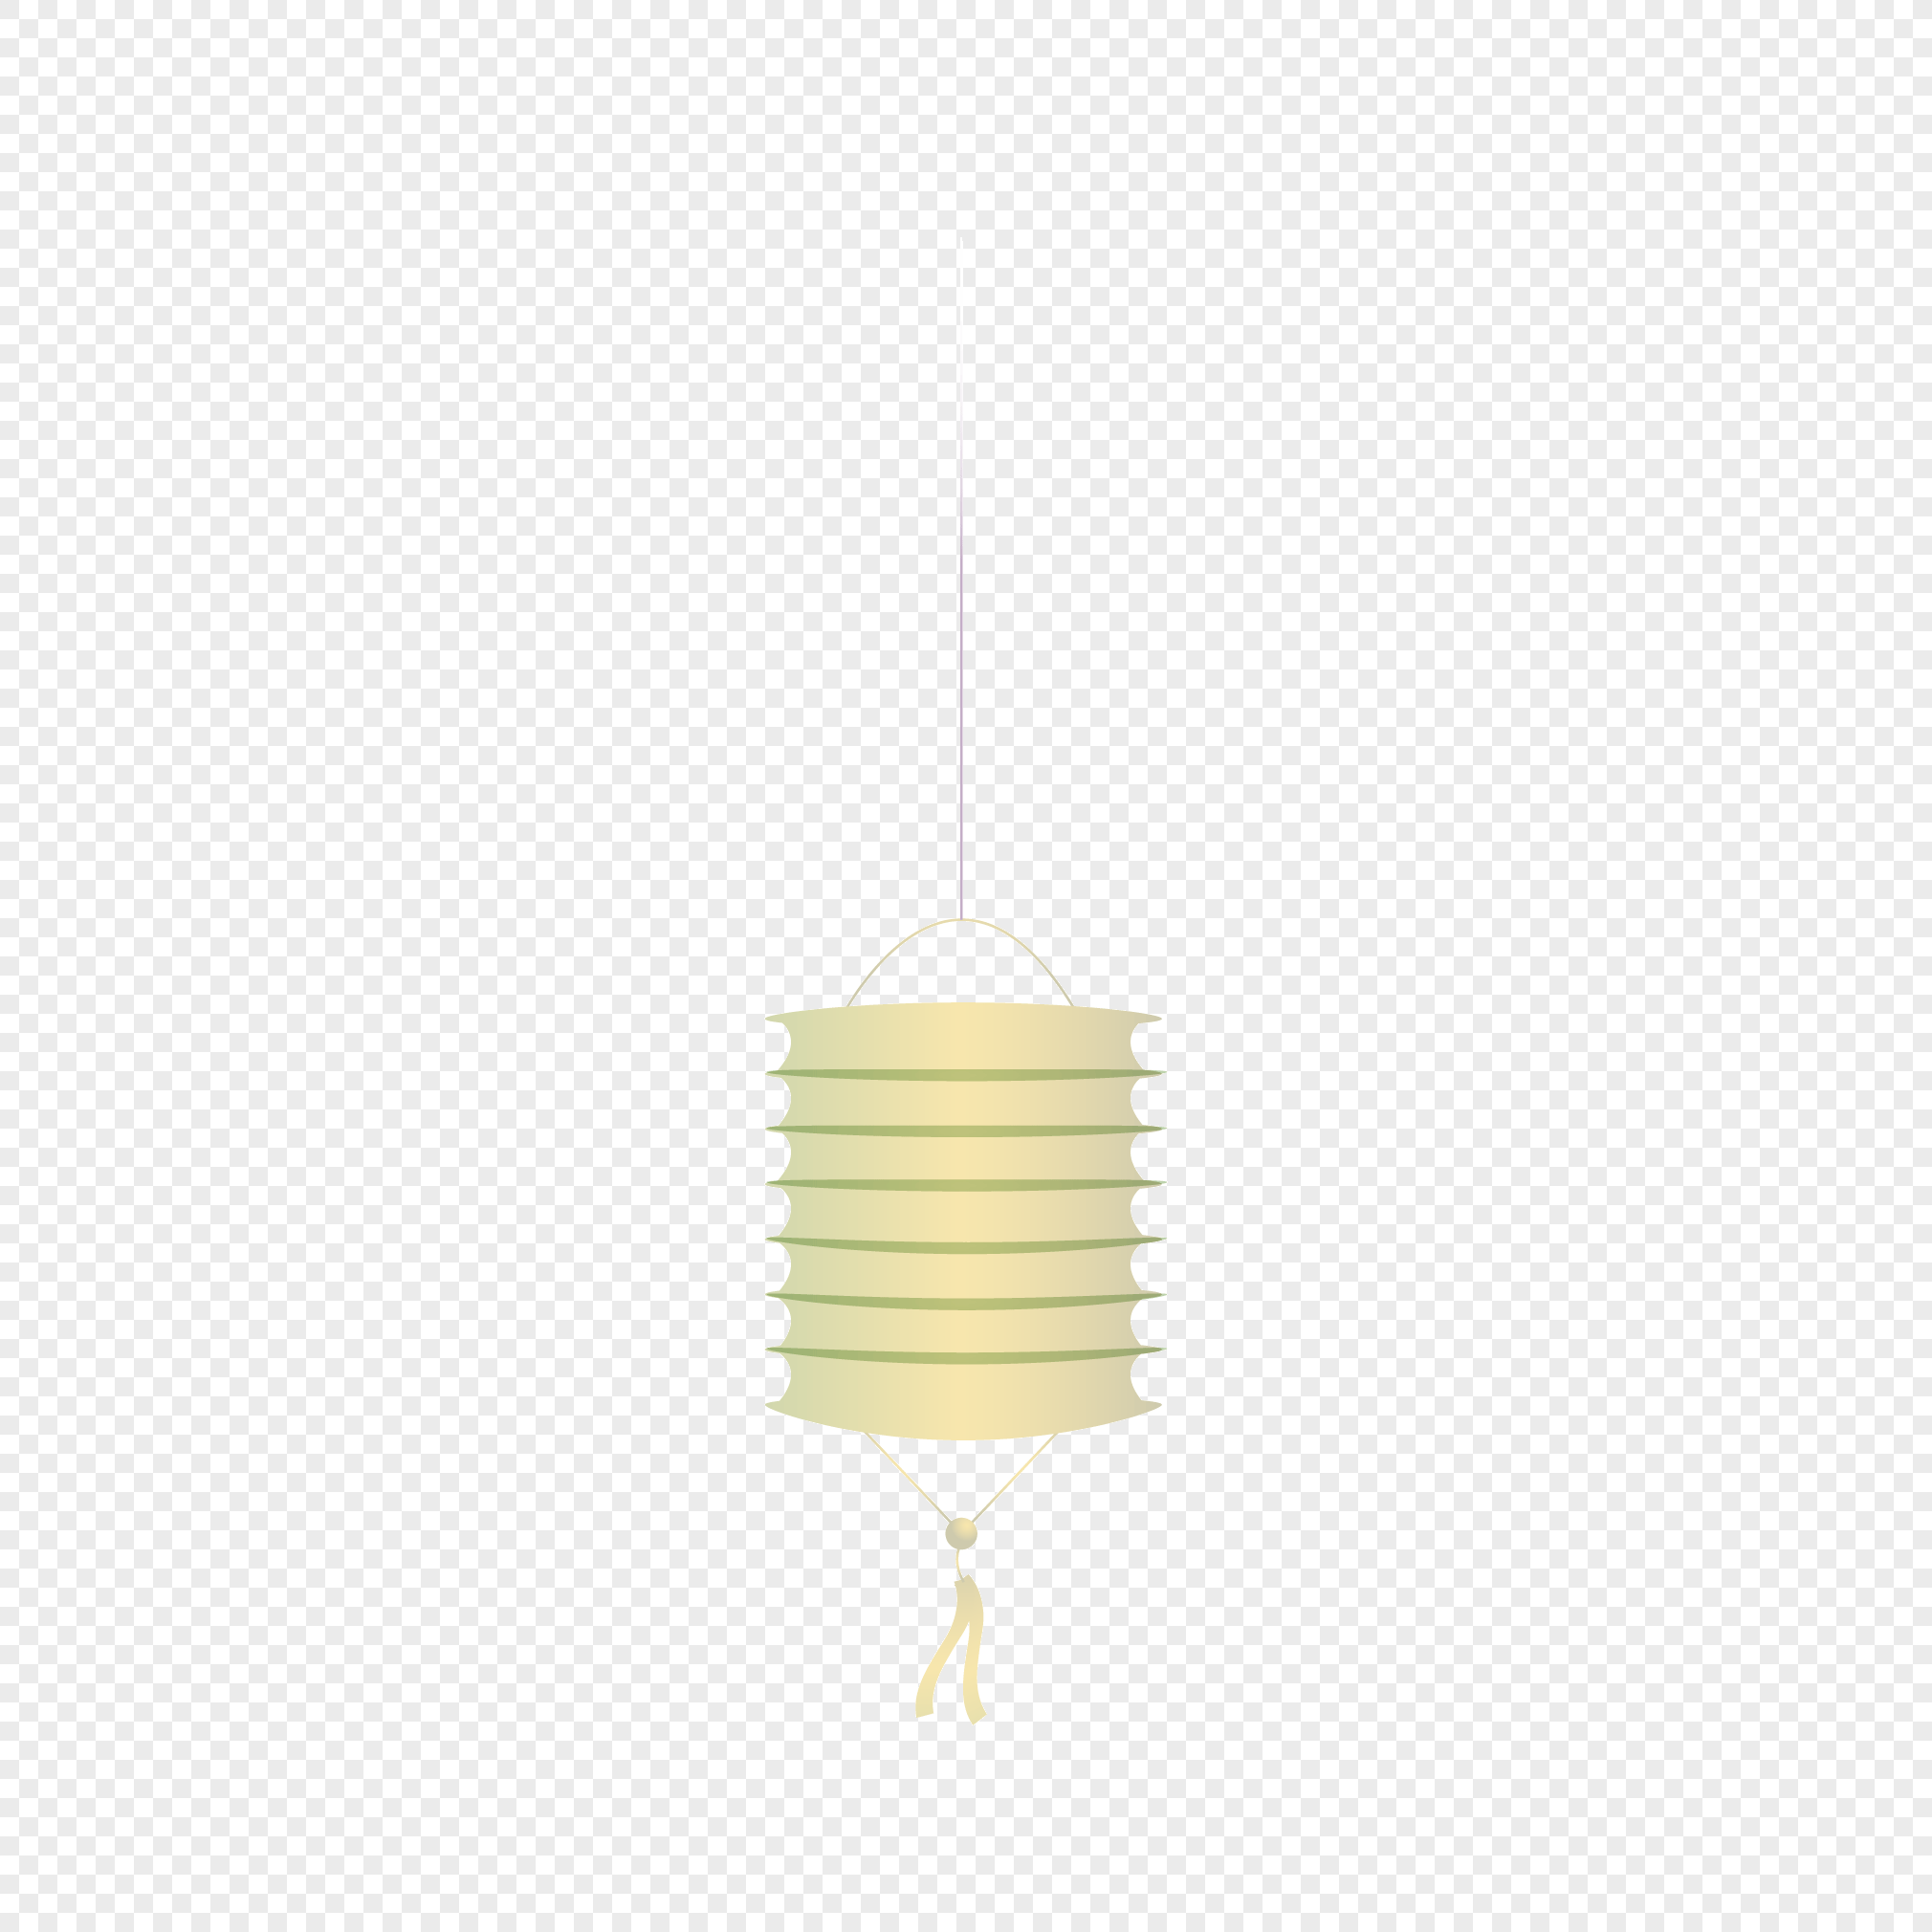 Simple Origami Lantern Png Imagepicture Free Download